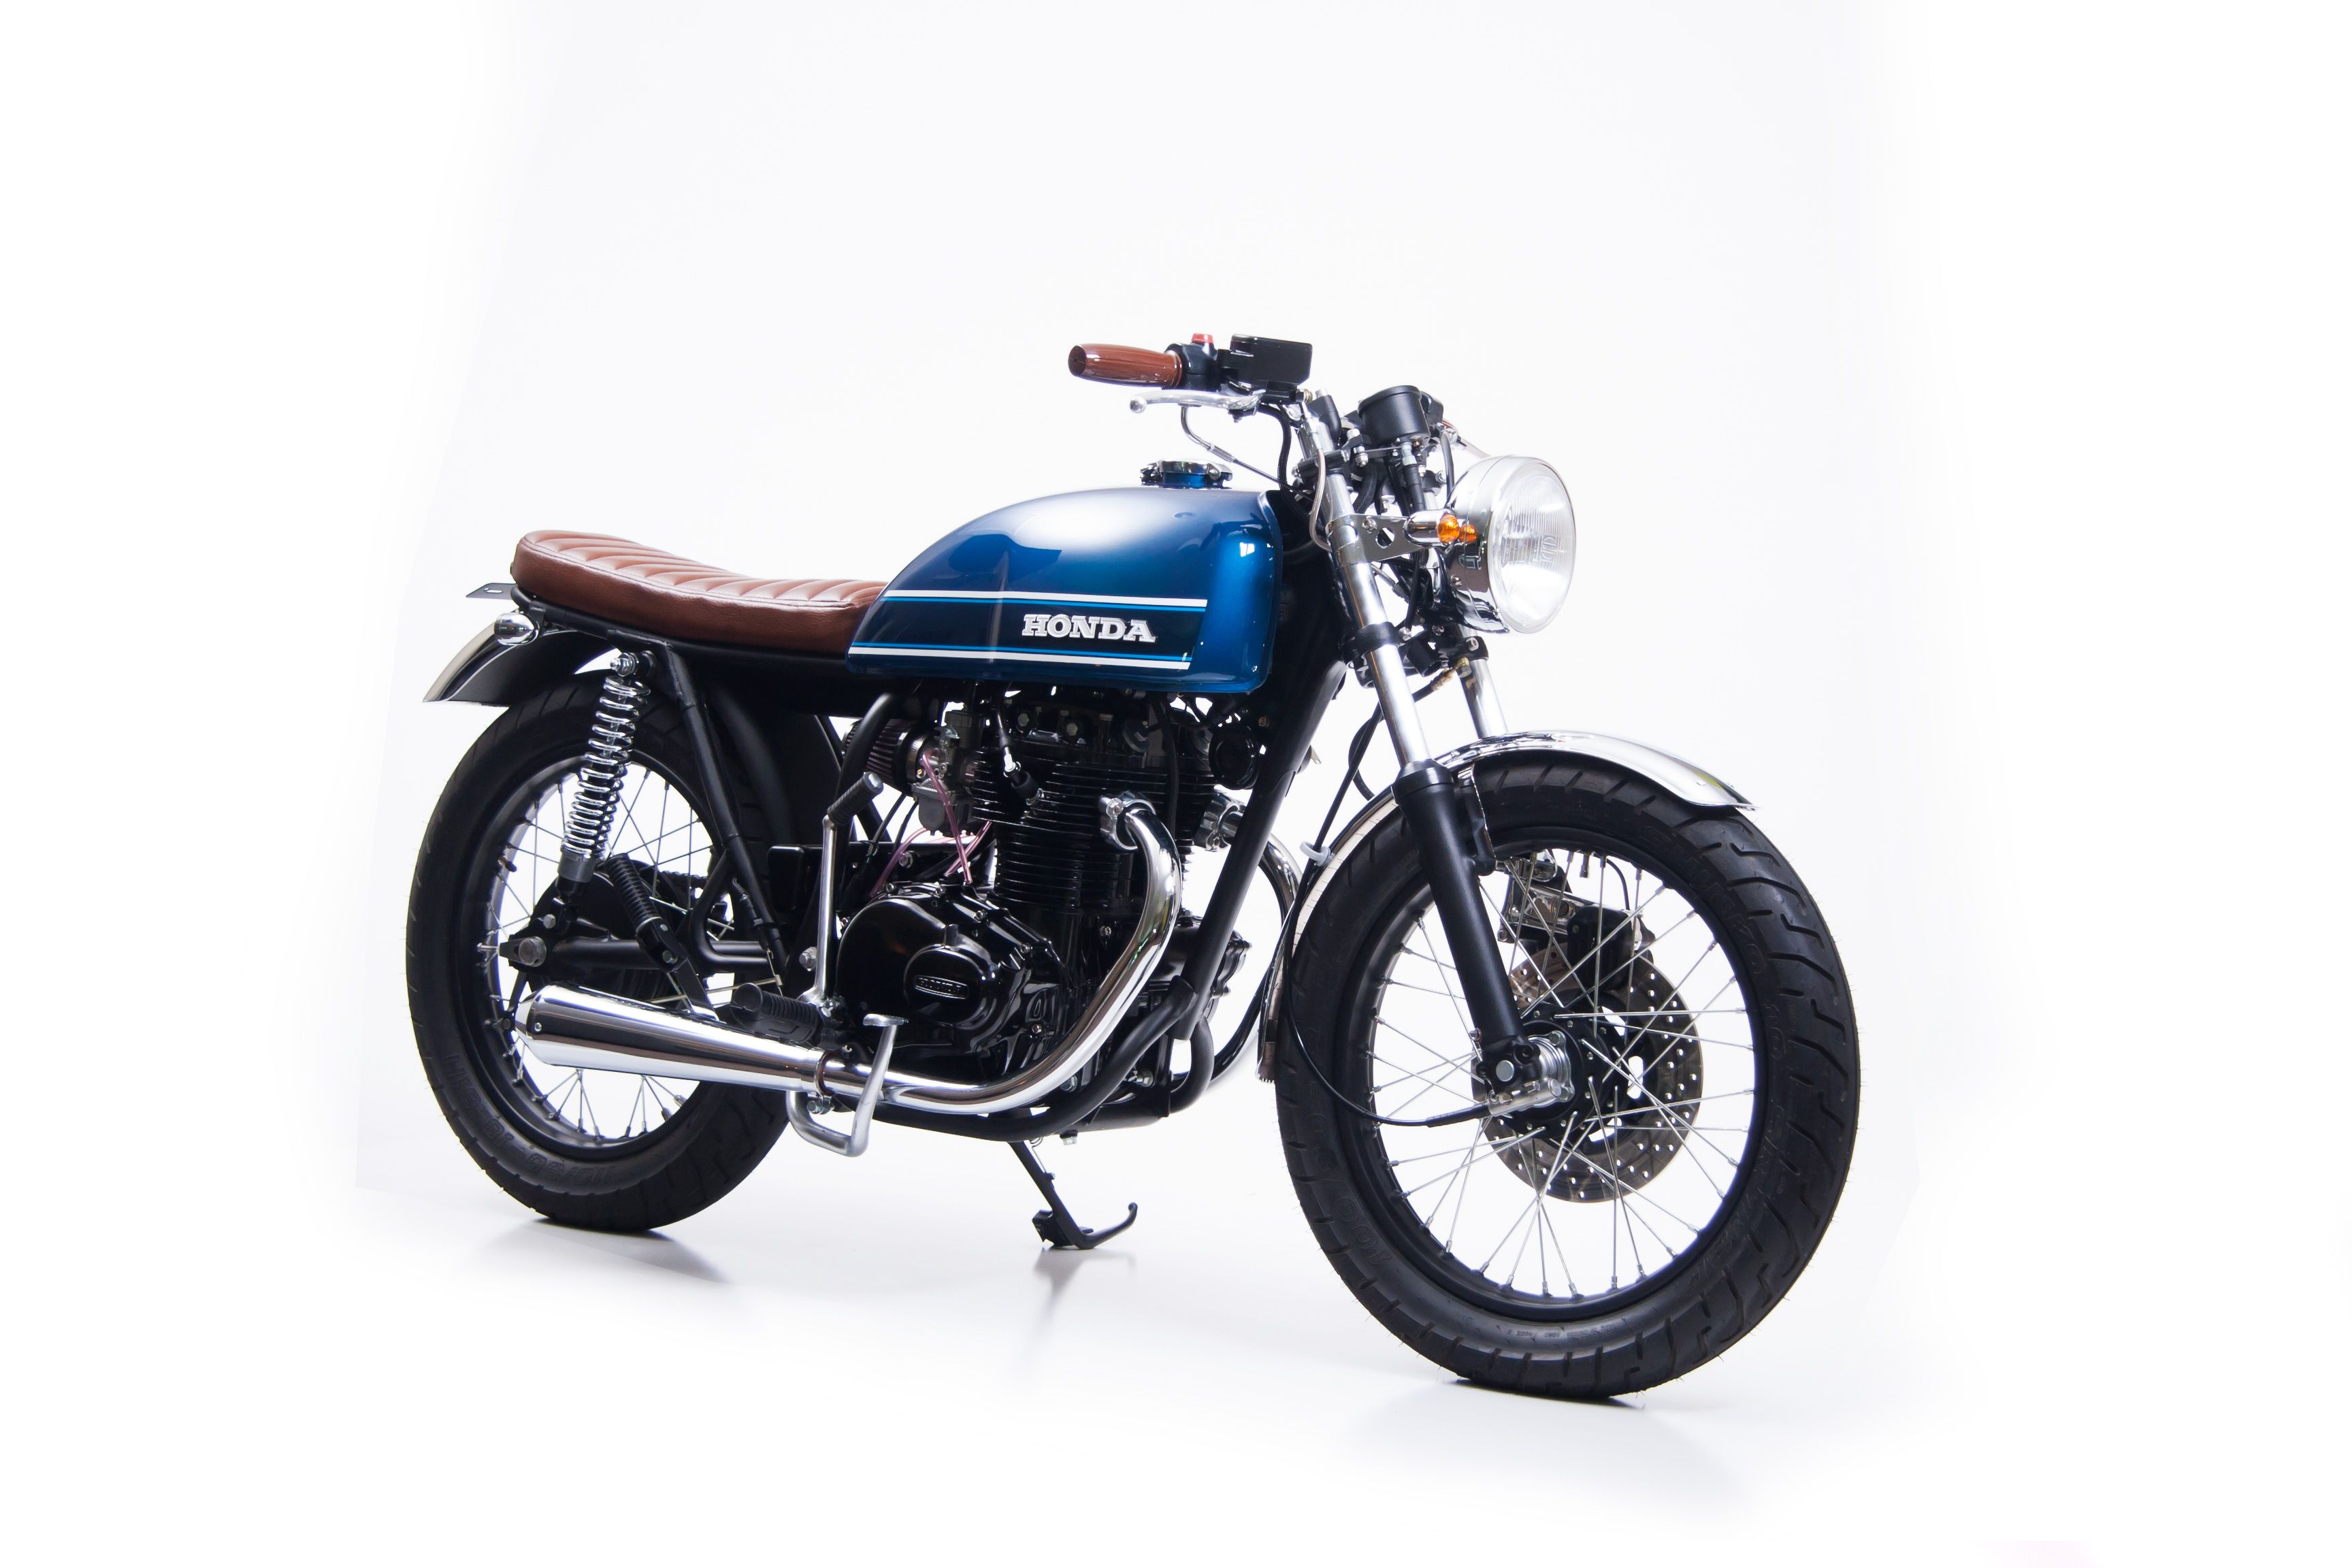 c5d74327a3f95 Custom restored Honda CB360T that blends the popular cafe racer and Brat  bike styles, while keeping a healthy does of its original